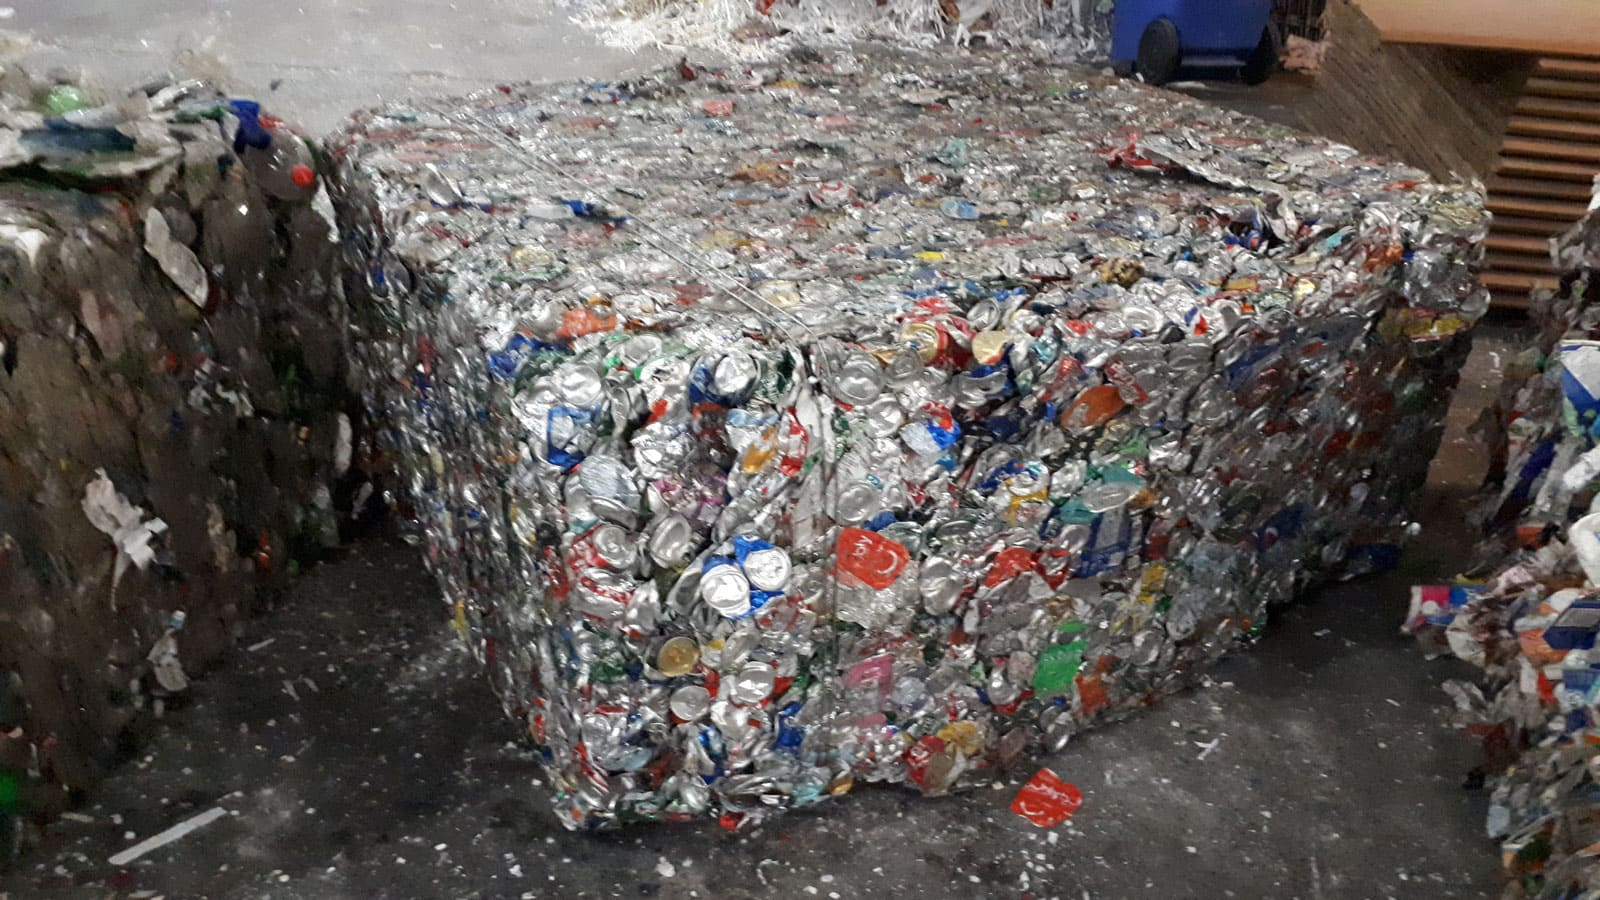 A compacted cube of aluminum pop cans currently fetches the highest price for recycled material.